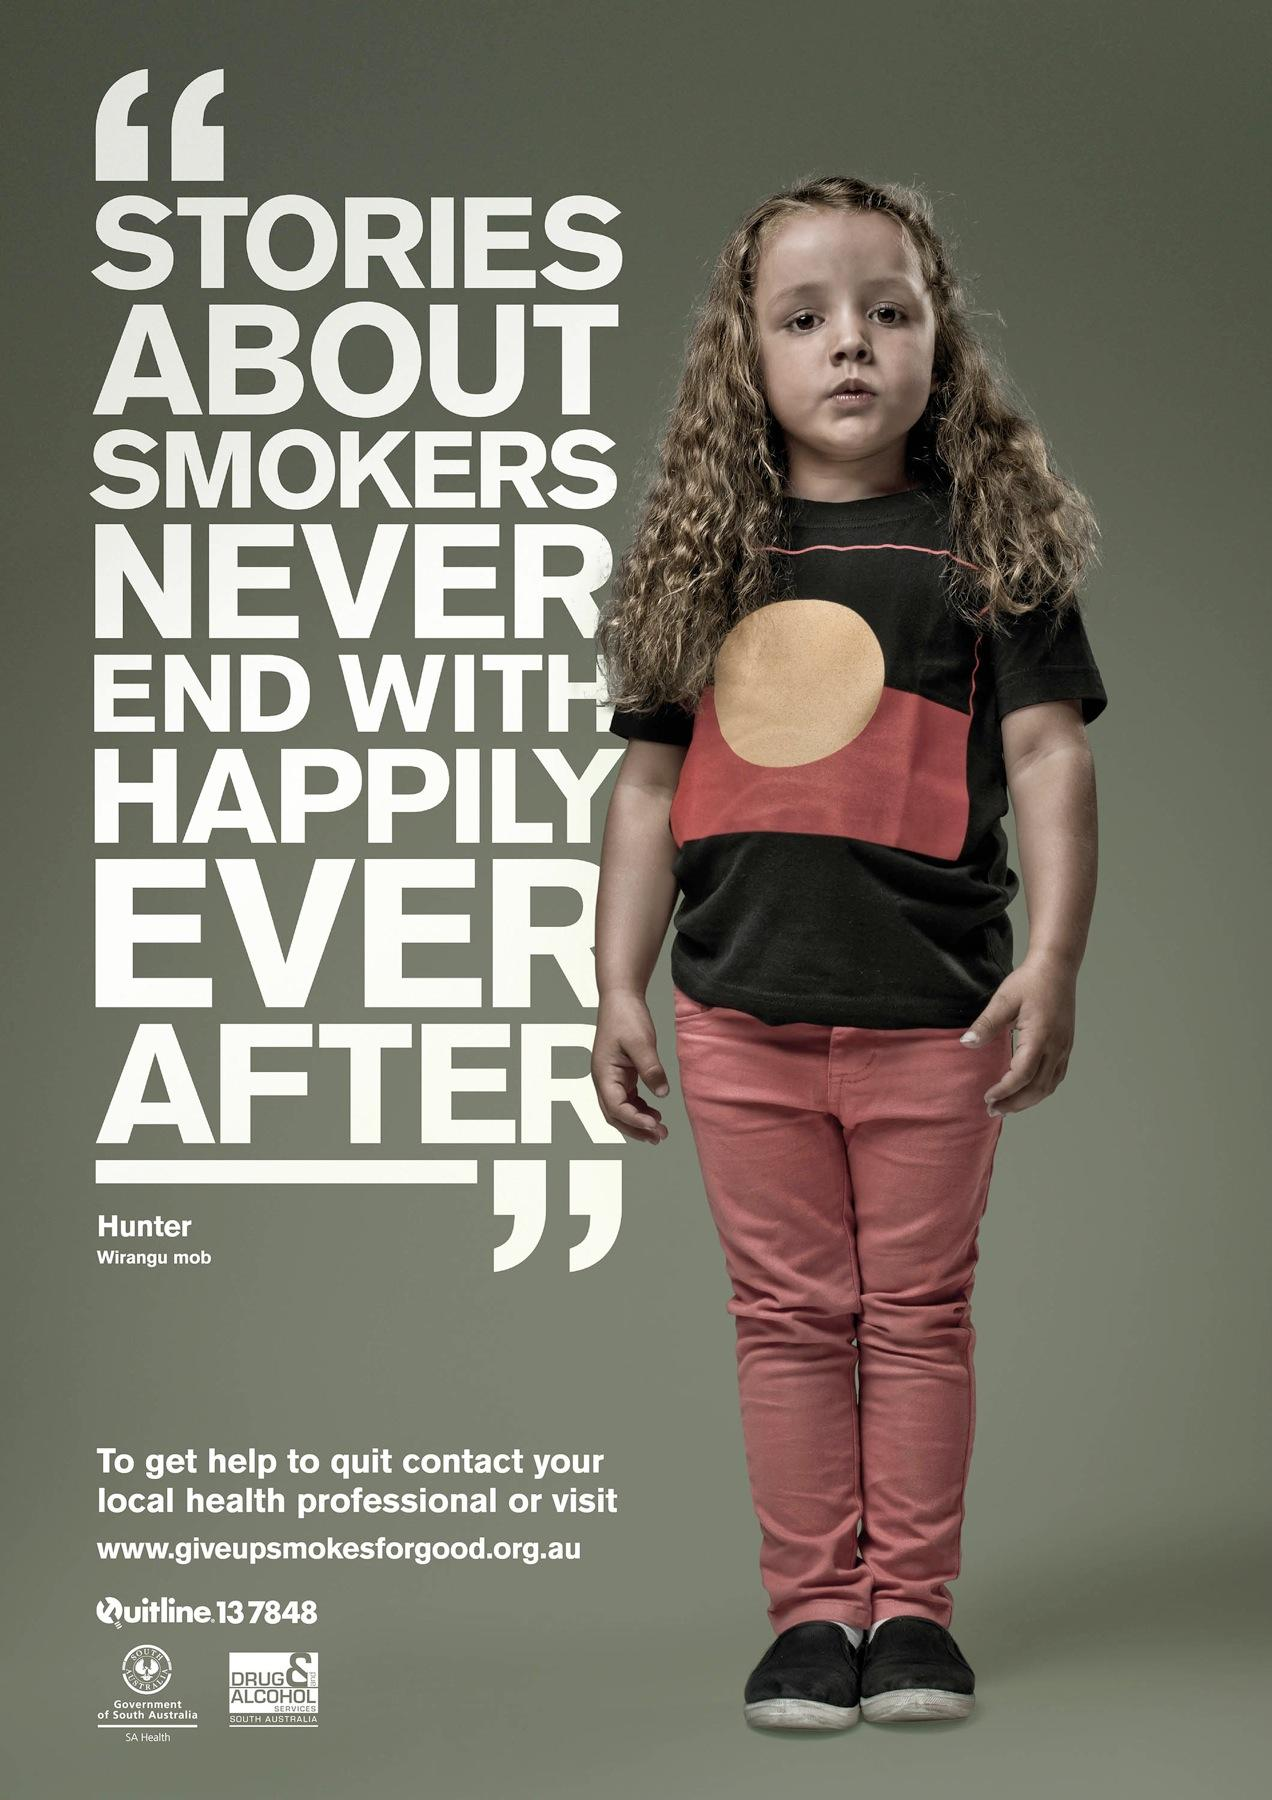 Drug & Alcohol Services South Australia Print Ad -  Hunter